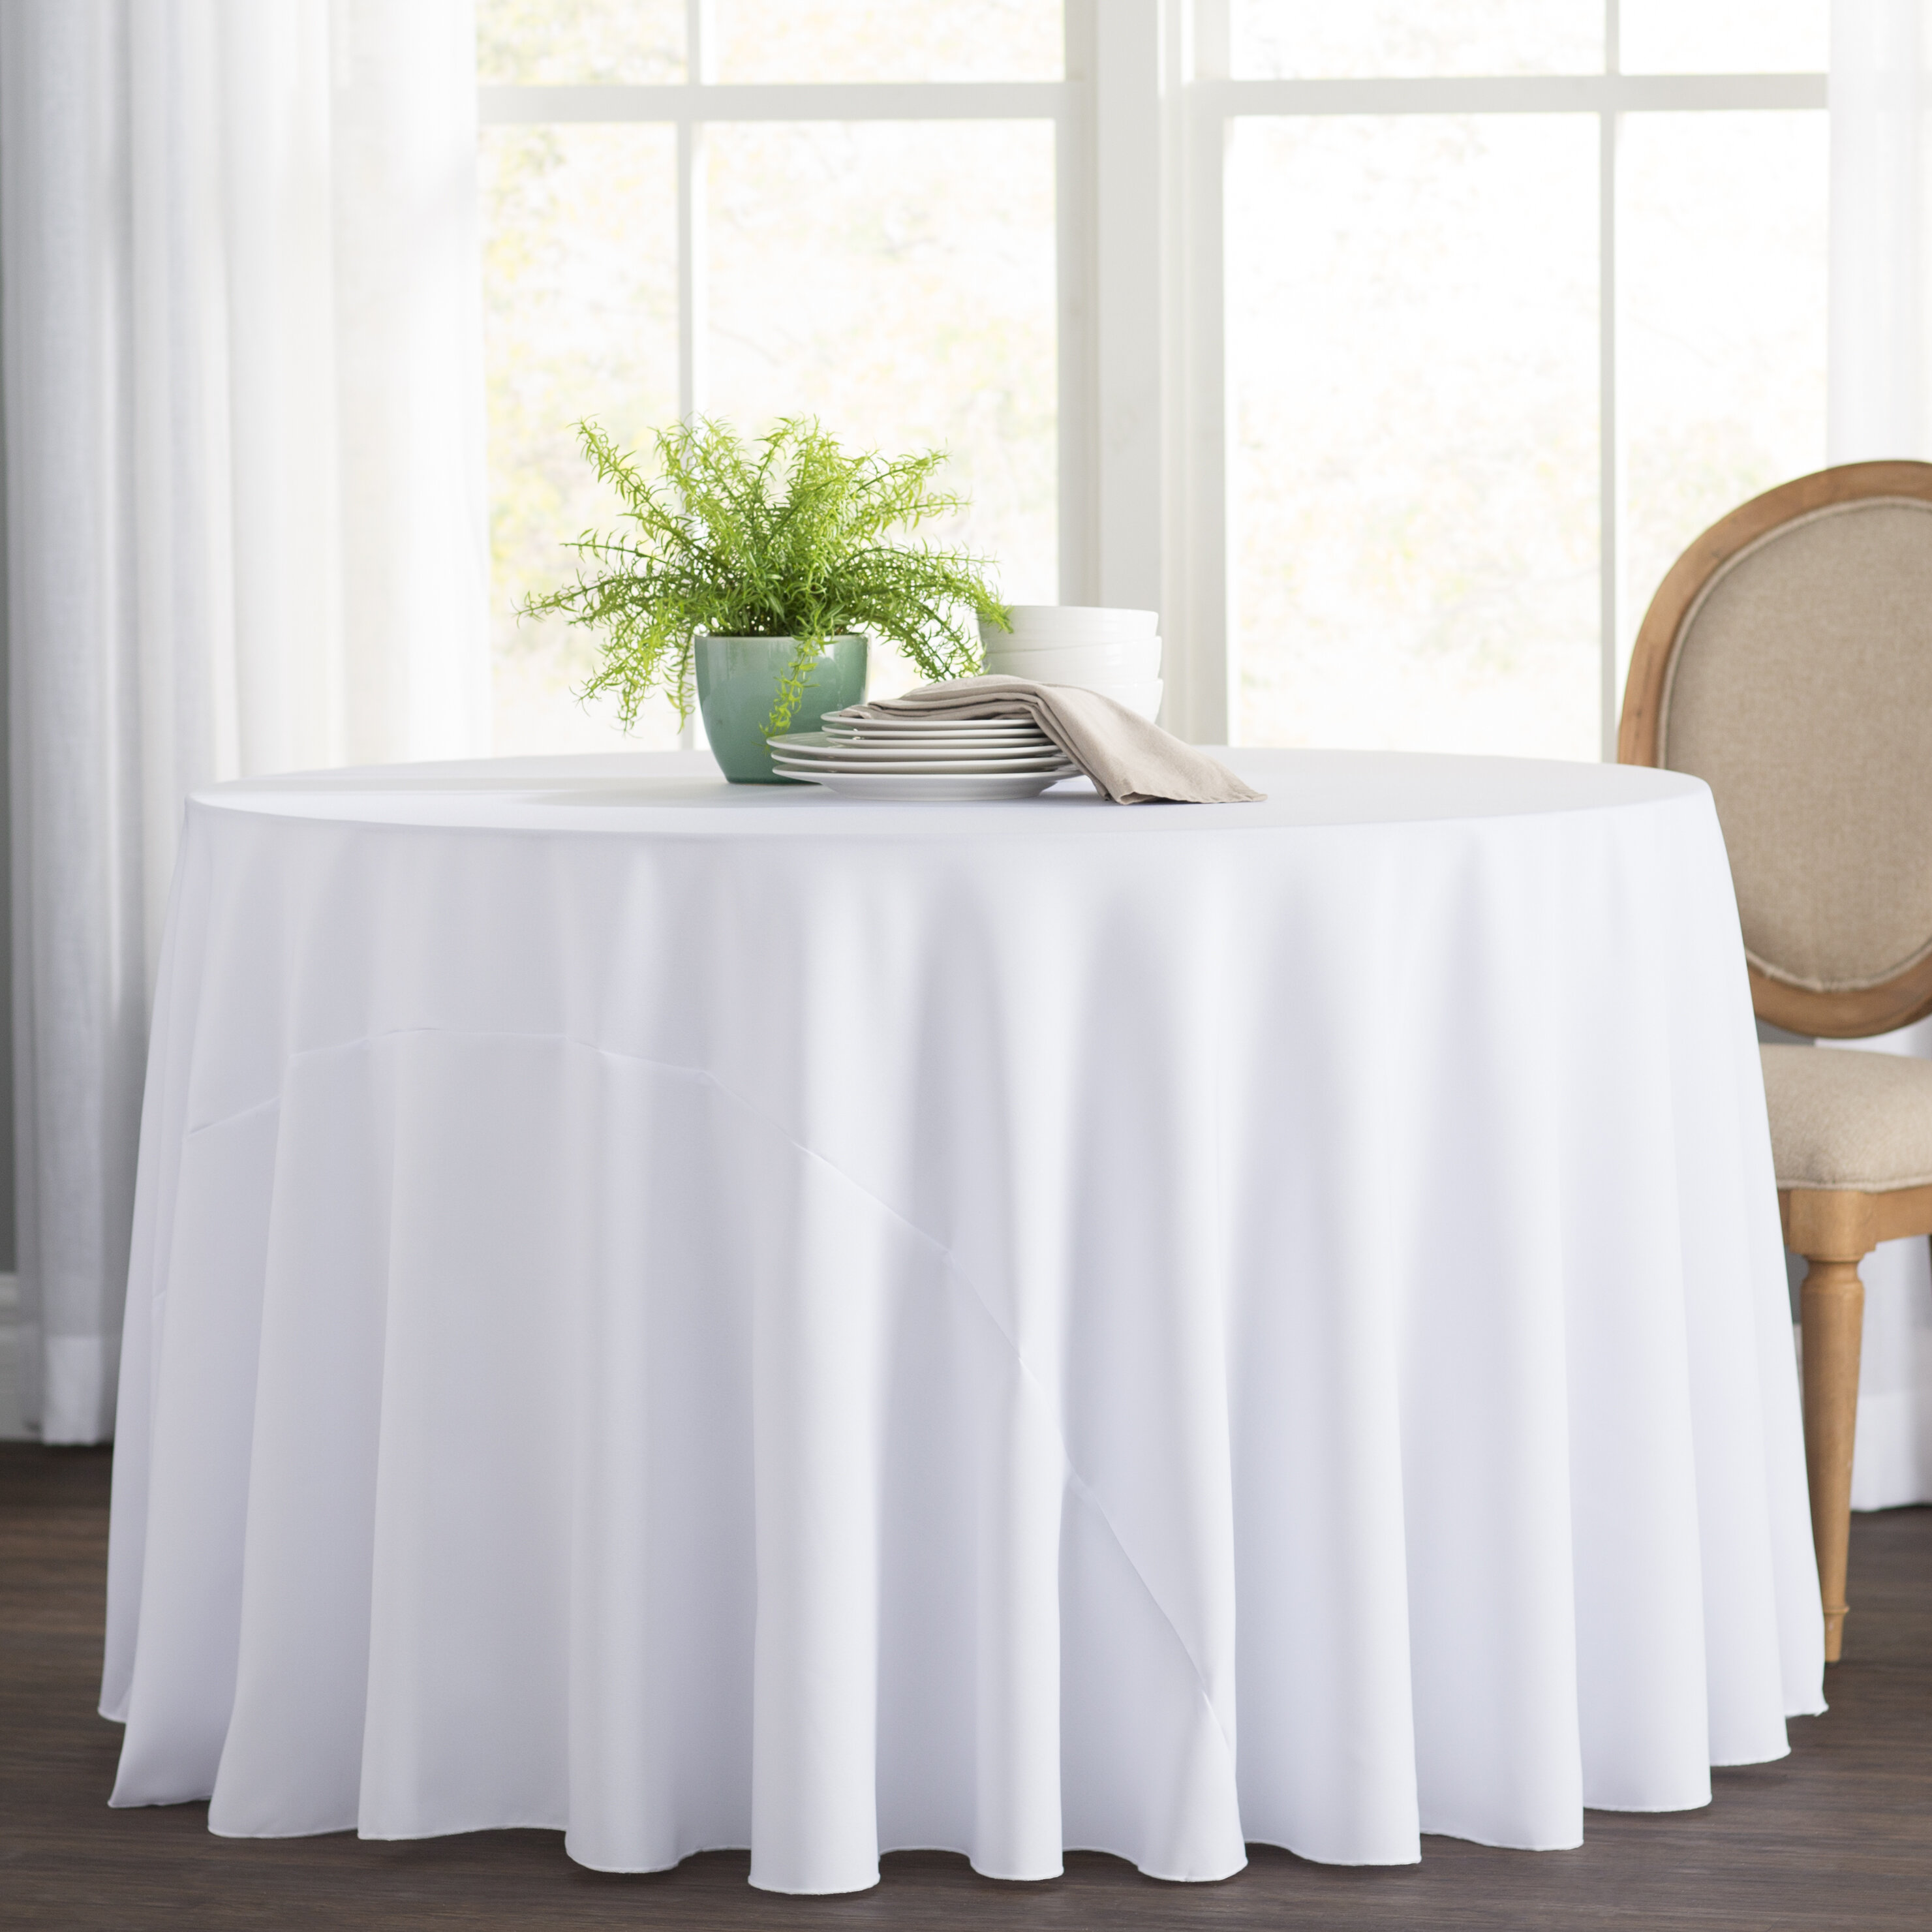 Charmant 42 Inch Round Tablecloth | Wayfair